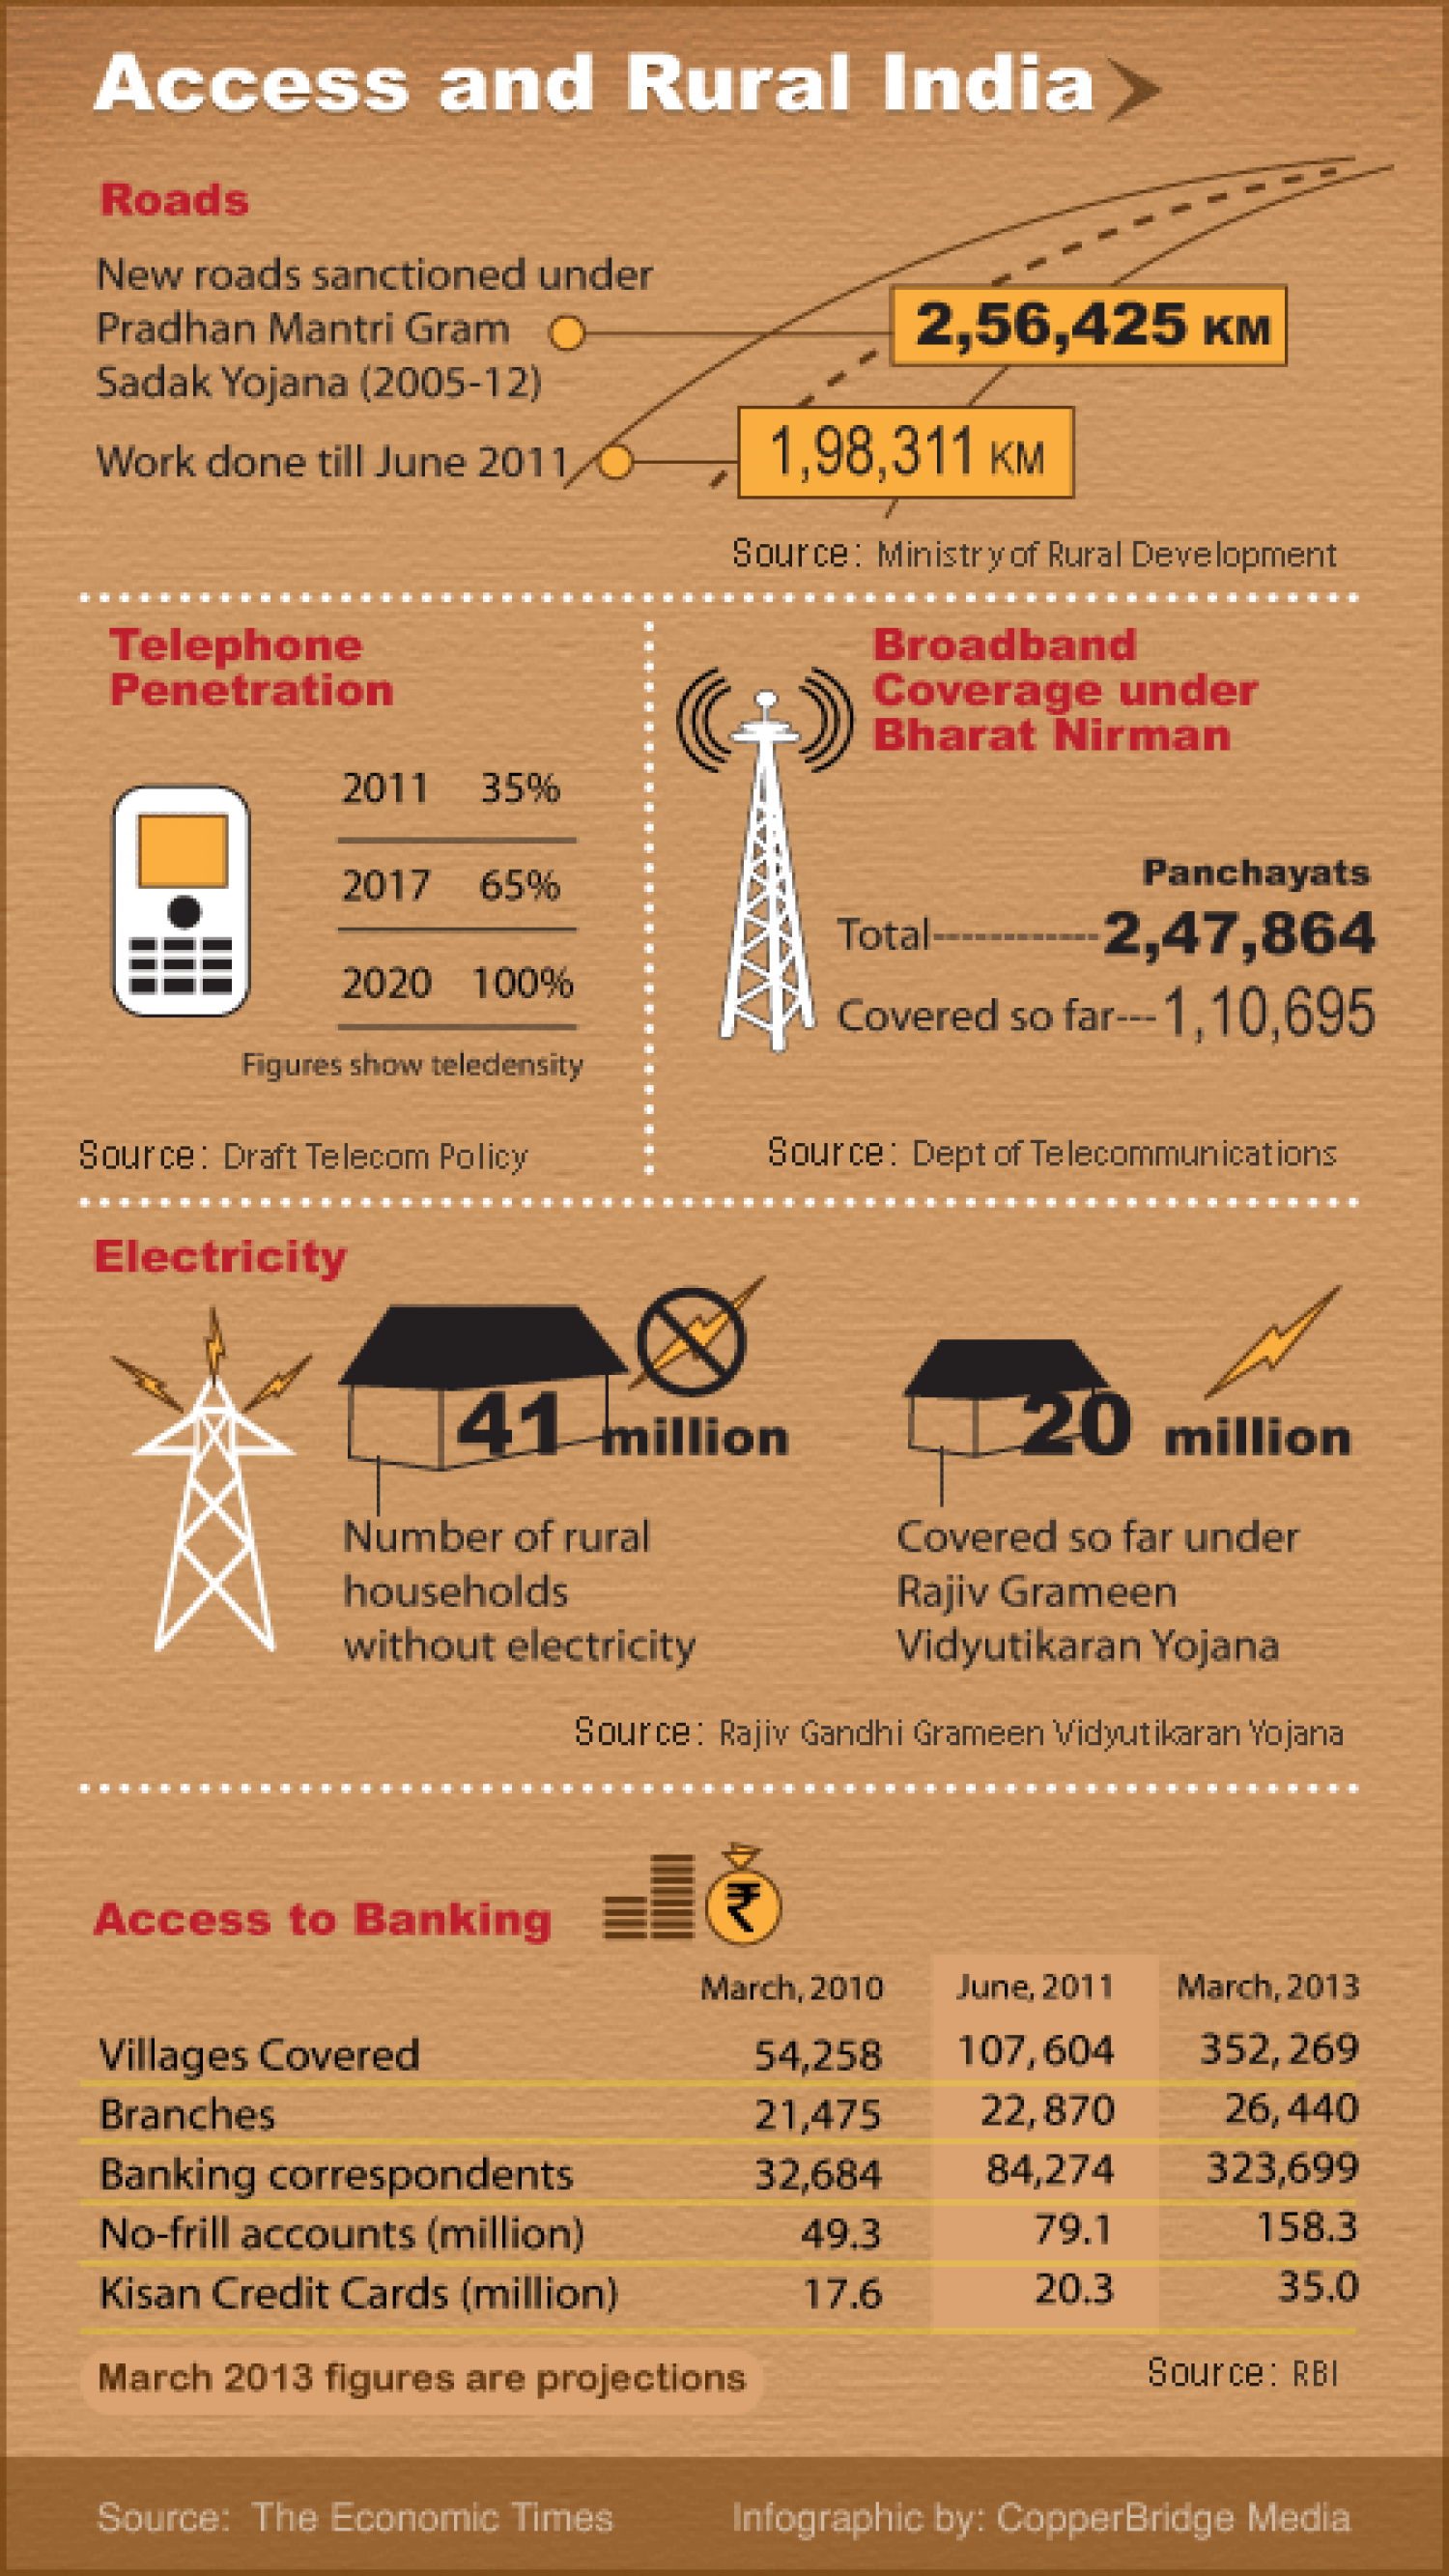 Access And Rural India Infographic